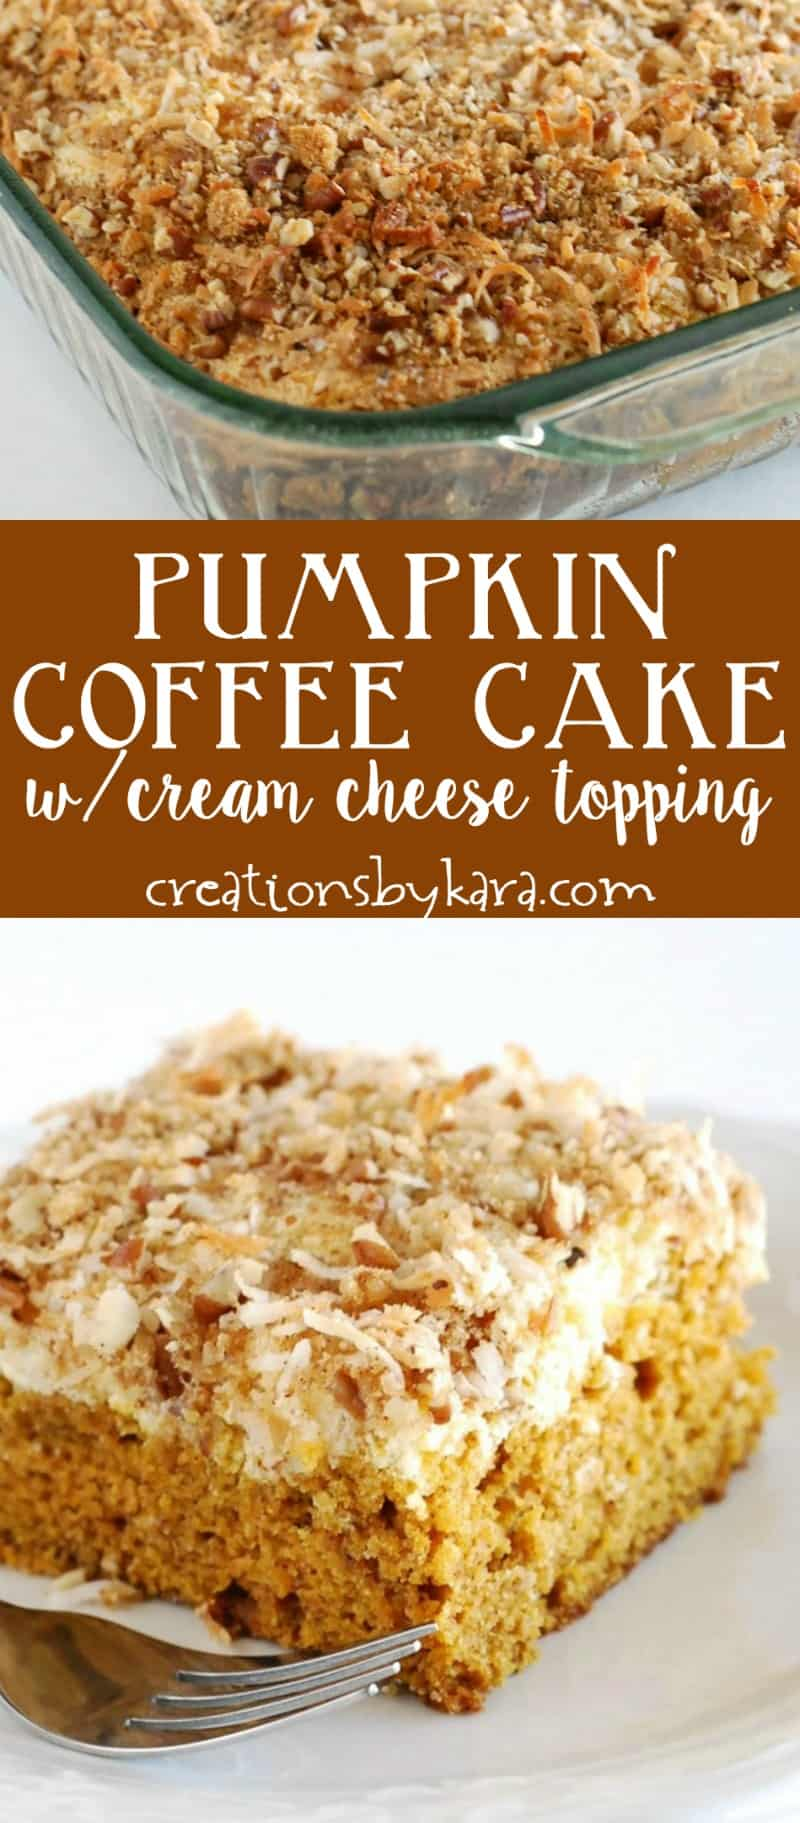 Pumpkin Coffee Cake with a cream cheese filling and crunchy topping. Simply delicious! #coffeecake #pumpkin